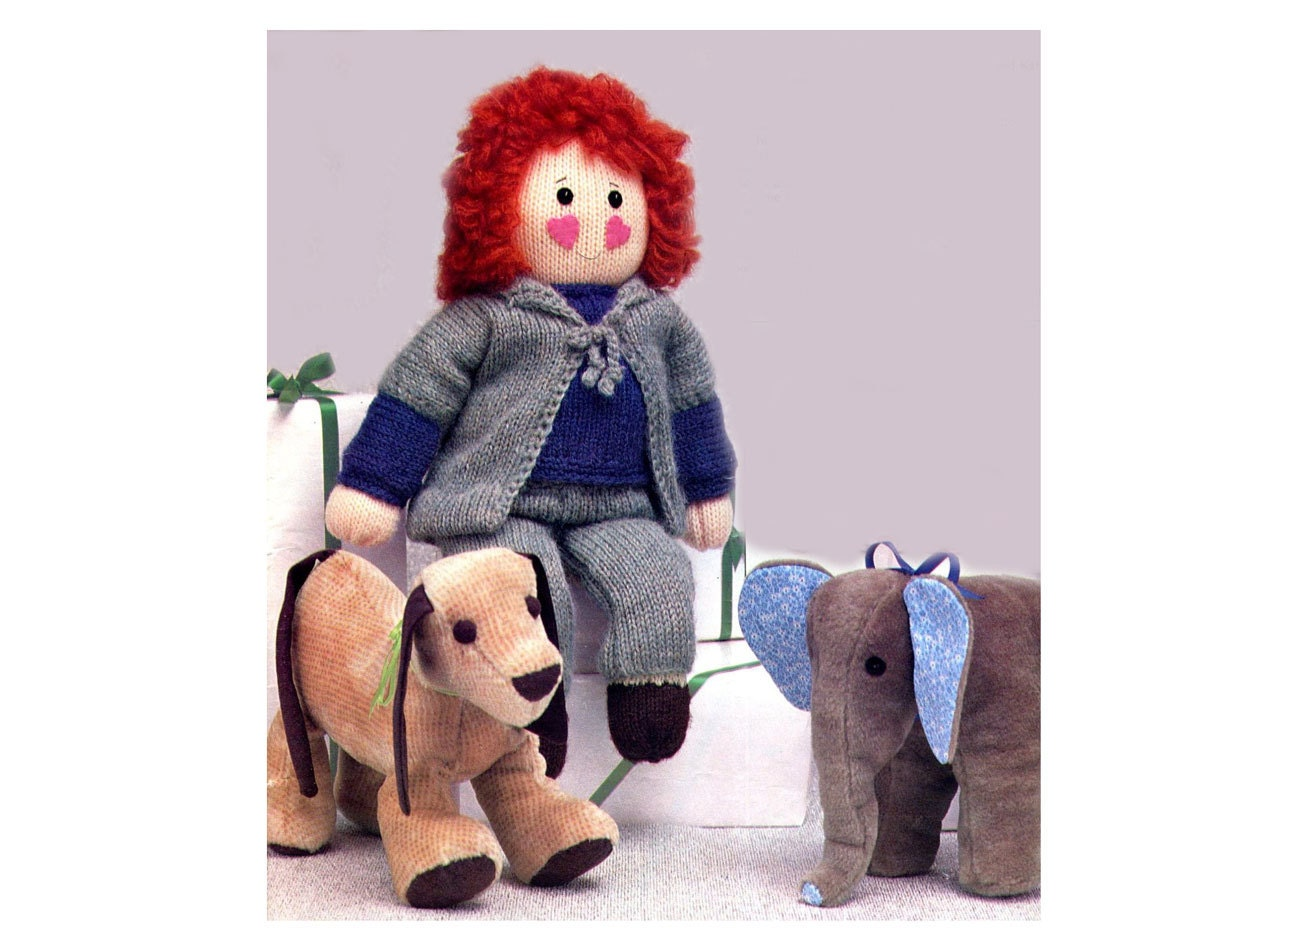 Knitting Nancy Doll : Doll and clothes knitting pattern dressable teddy bear